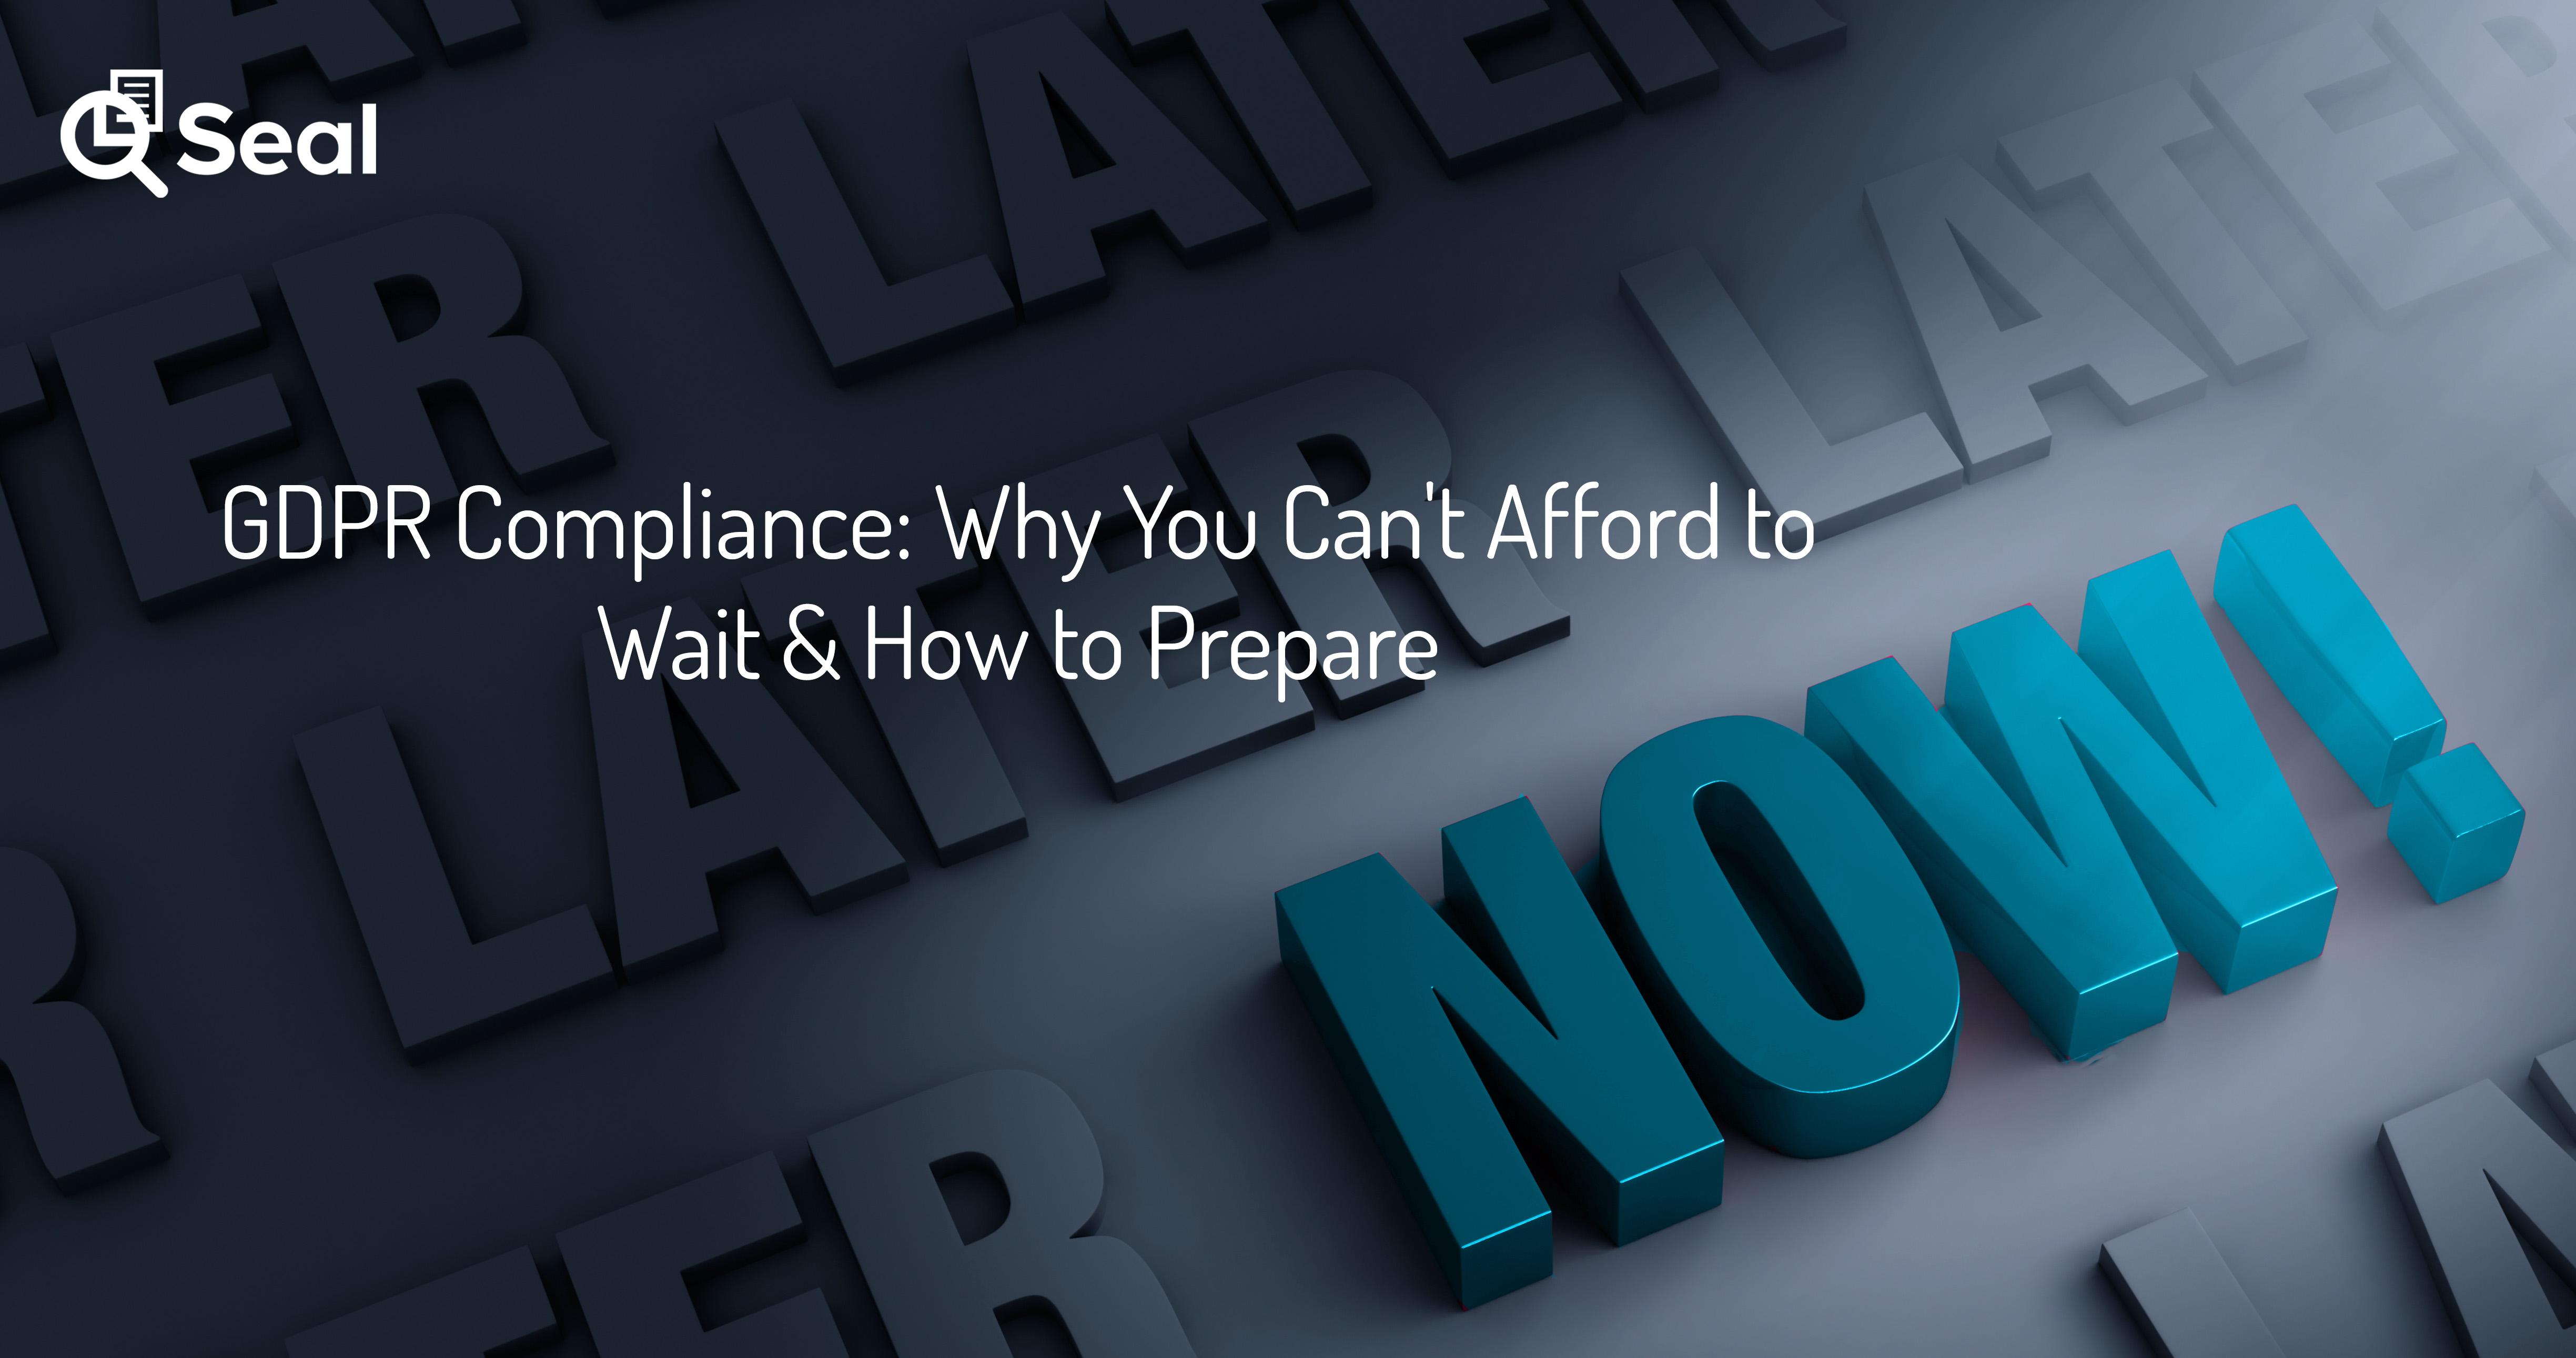 GDPR Compliance: Why You Can't Afford to Wait & How to Prepare